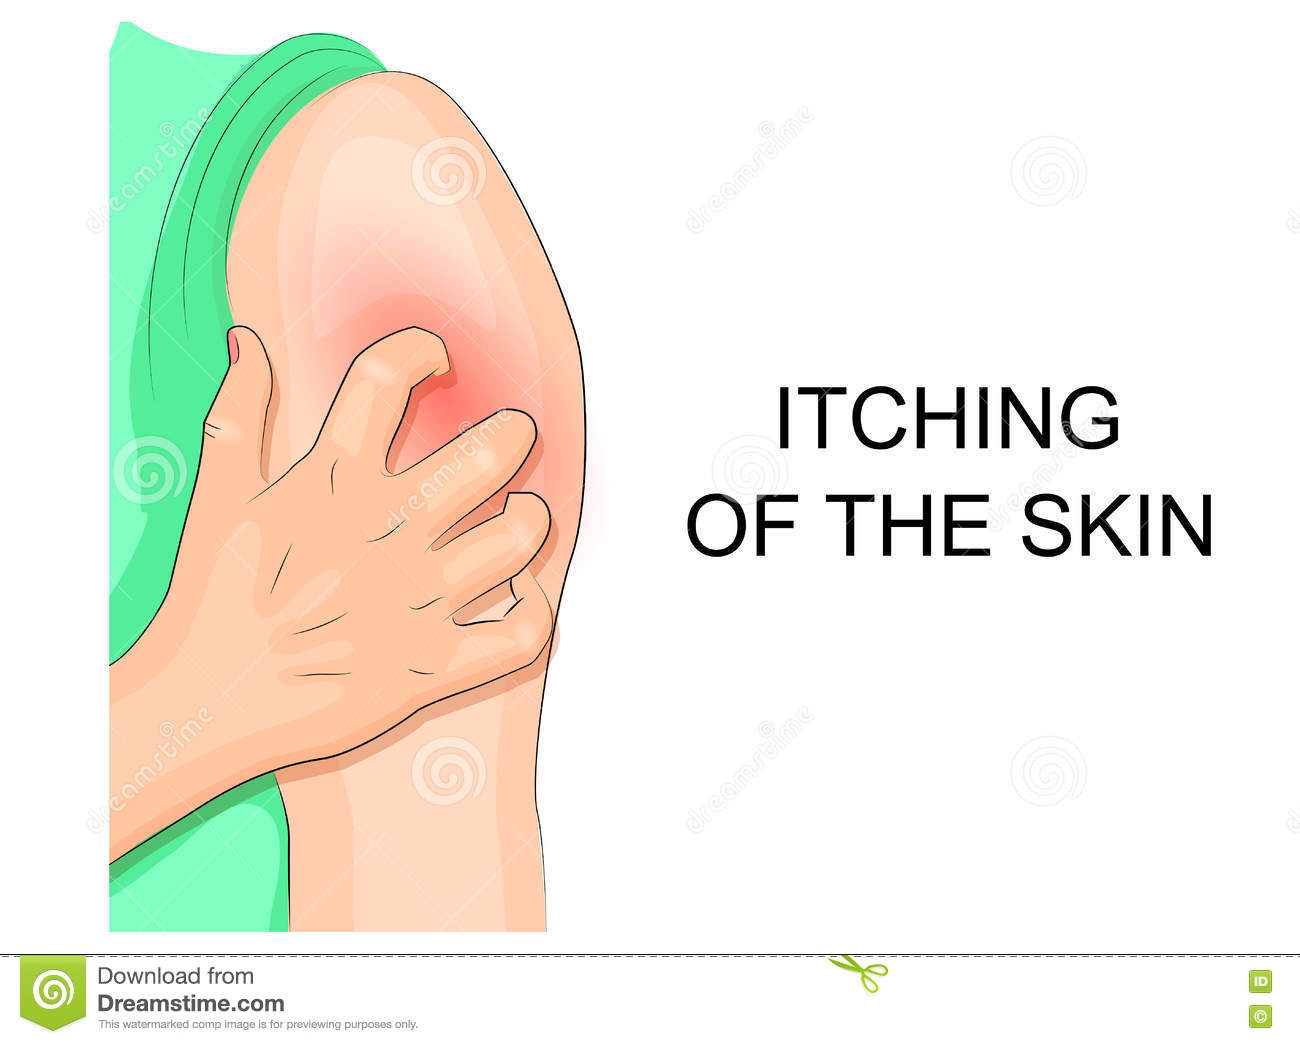 how to stop eczema itching immediately